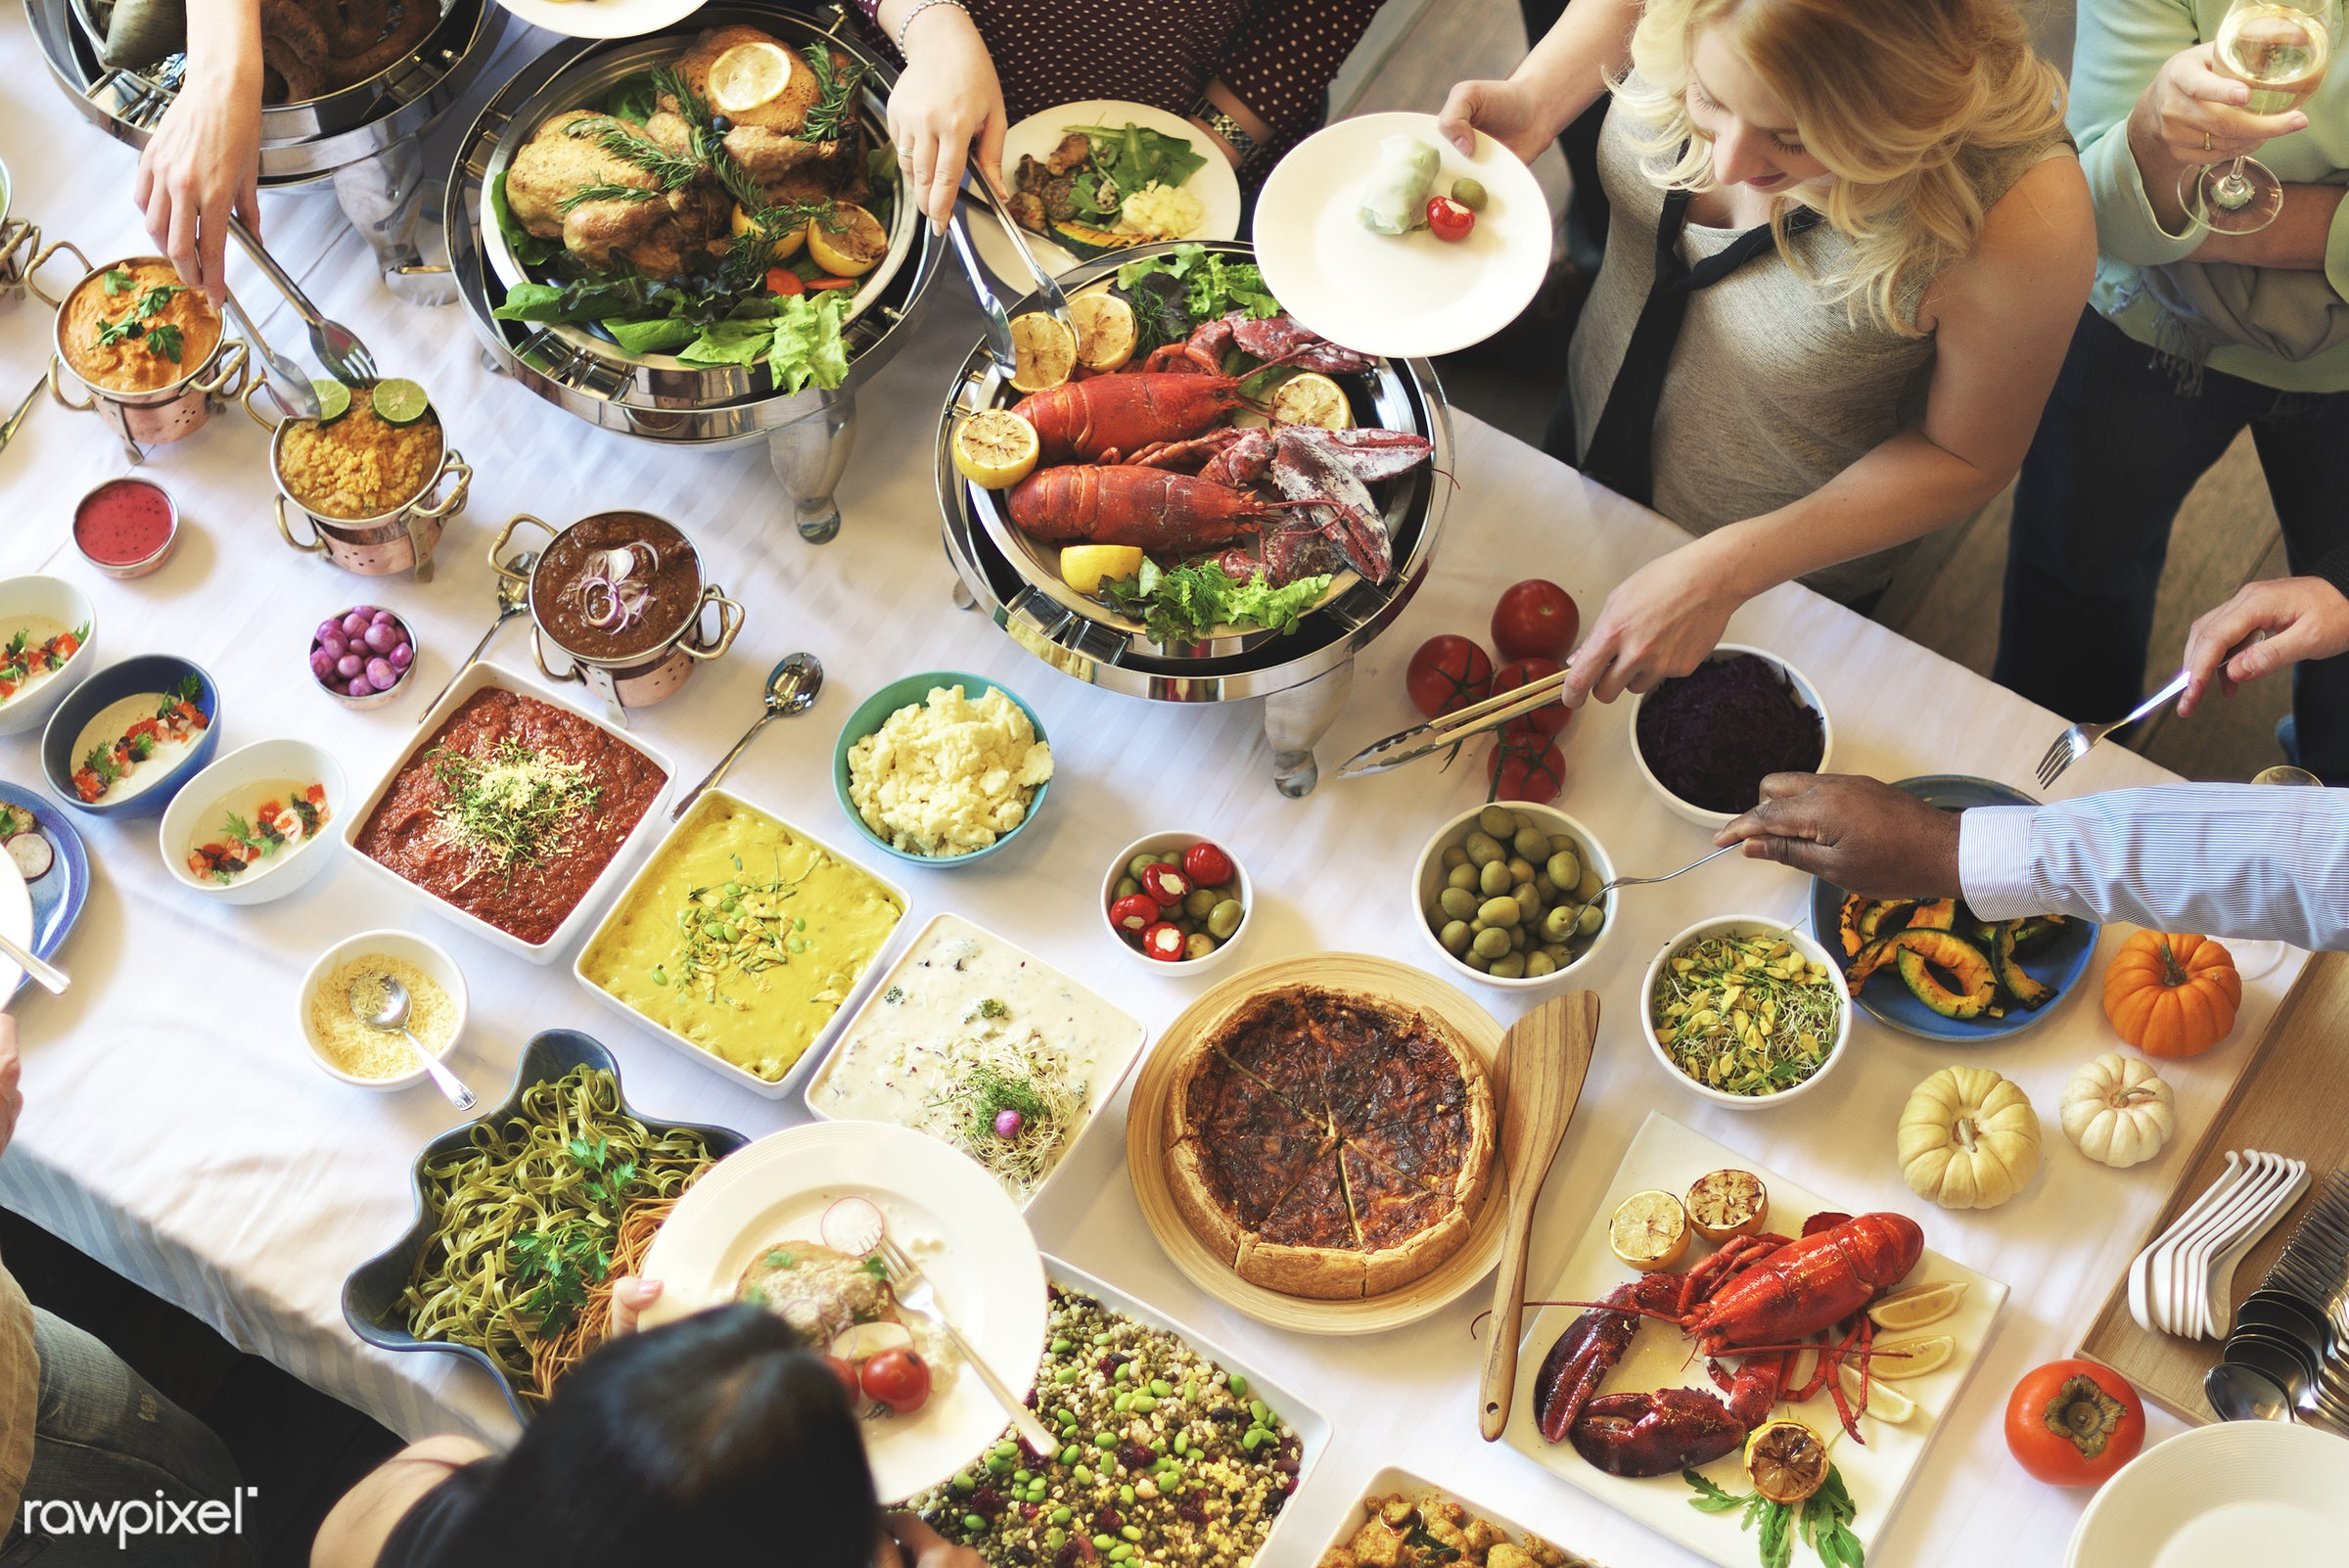 buffet, asian food, brunch, cafe, catering, celebration, cheering, cheers, choice, crowd, dessert, diet, dining, dinner,...